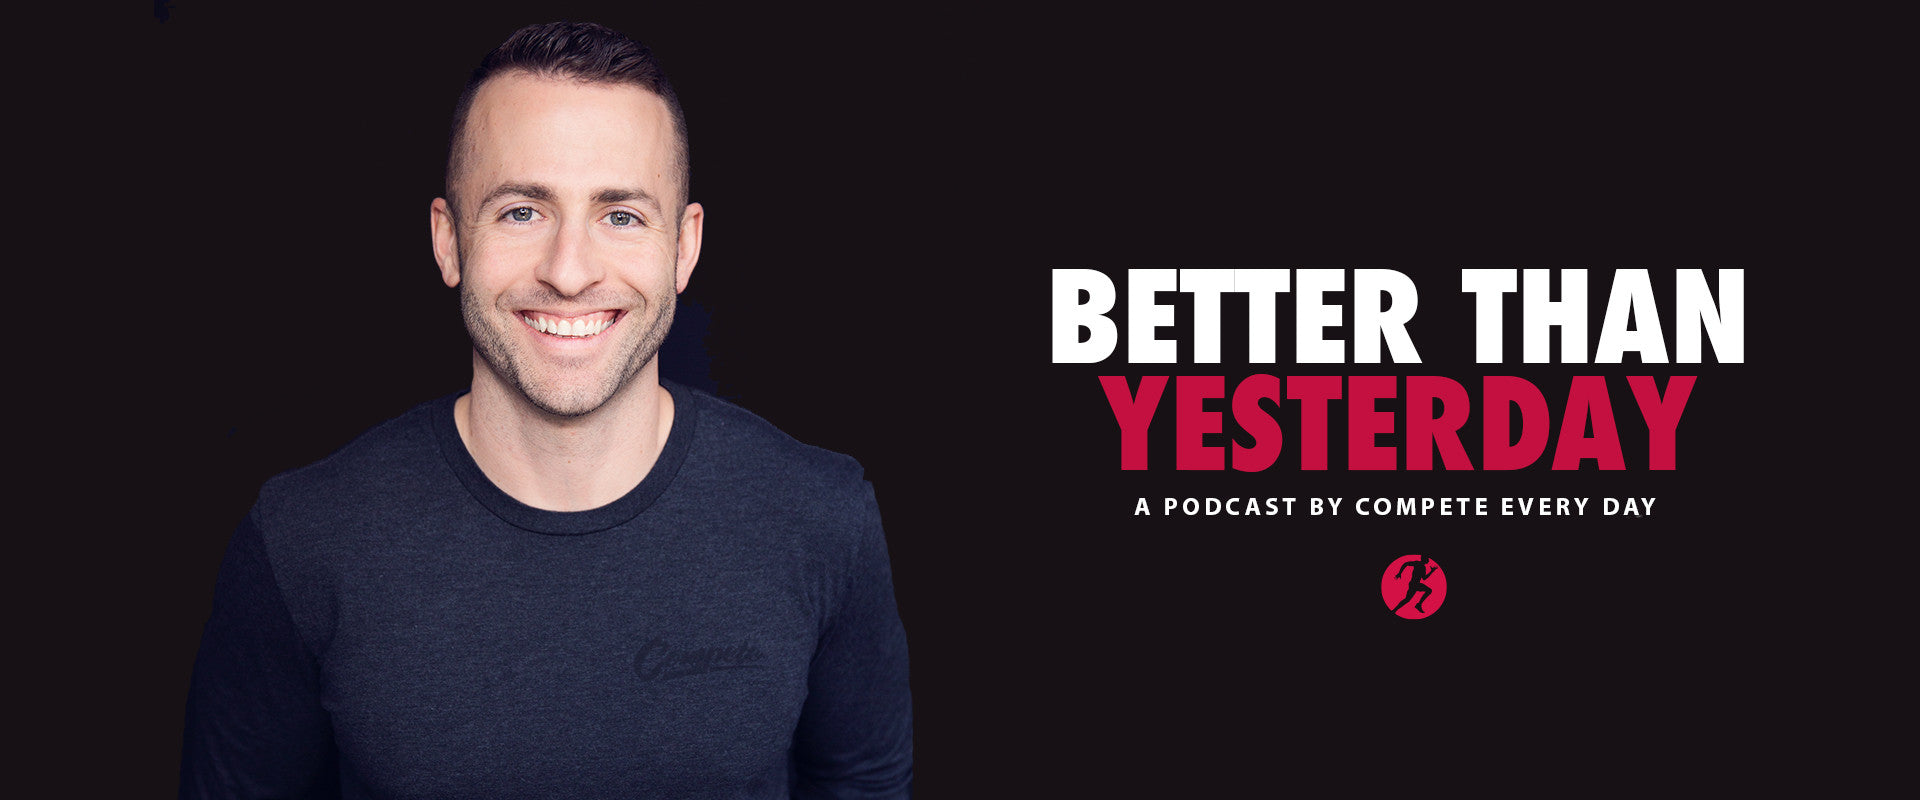 Better than Yesterday Podcast